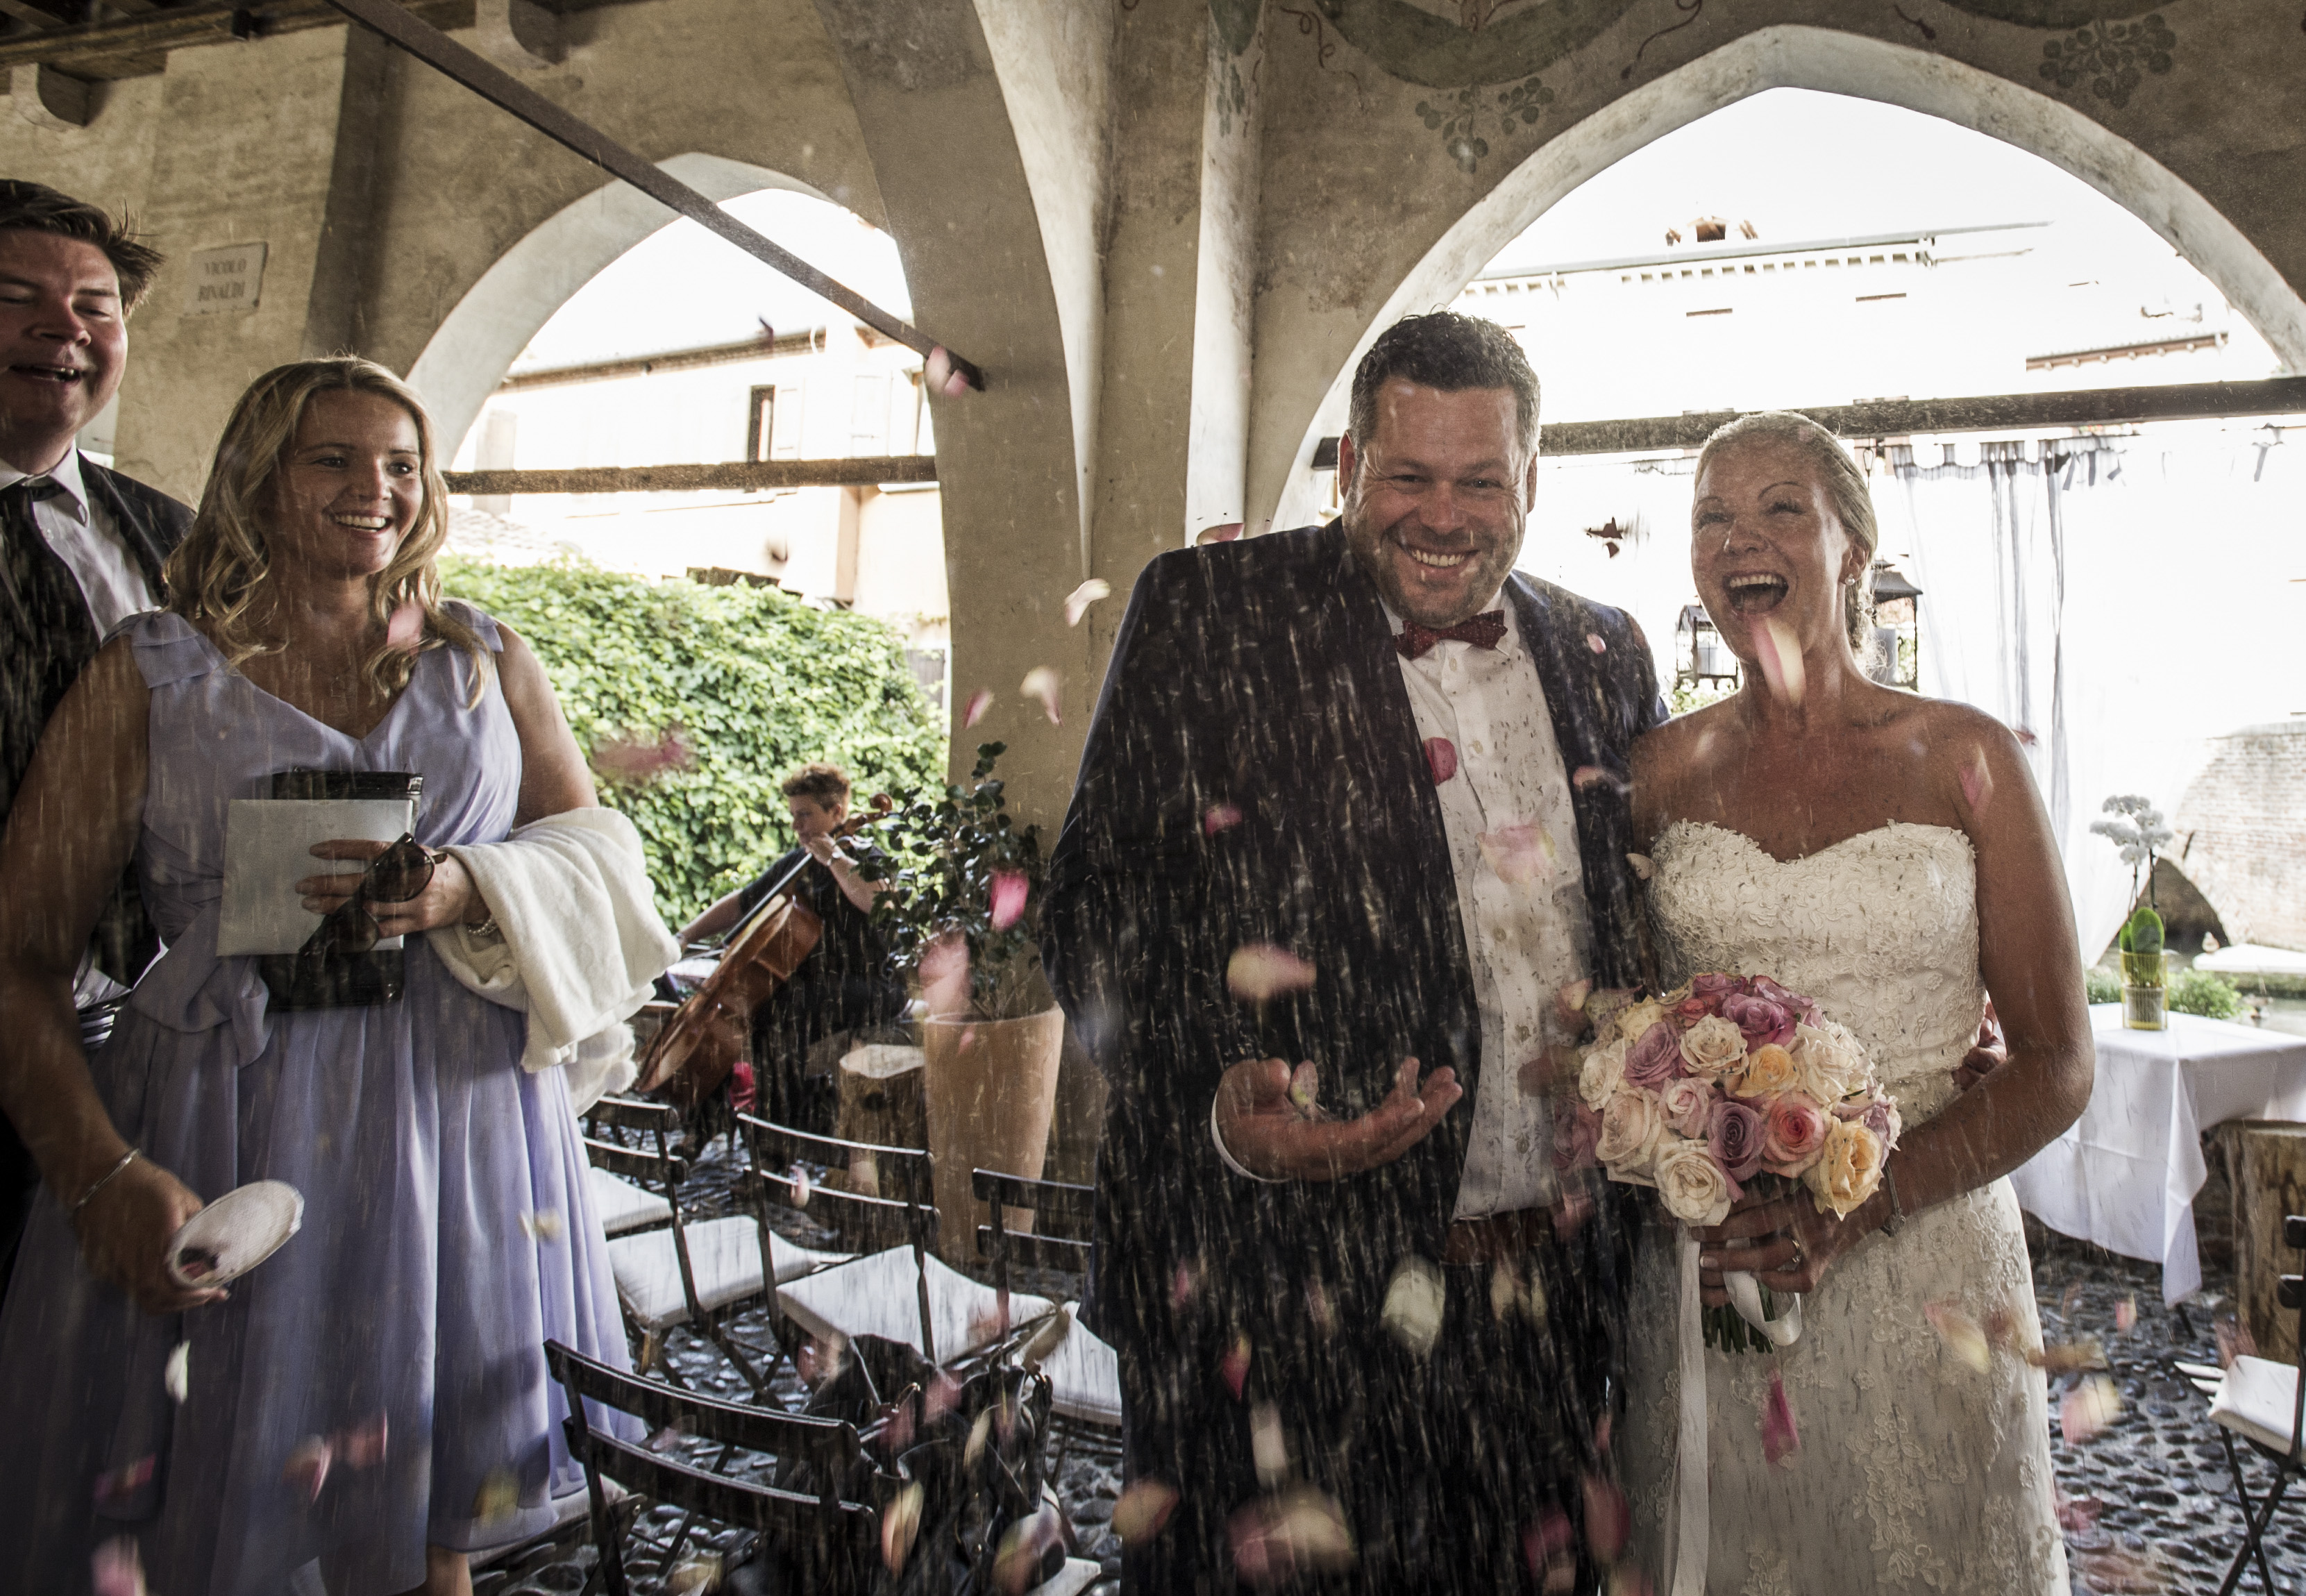 Norwegian wedding in Italy